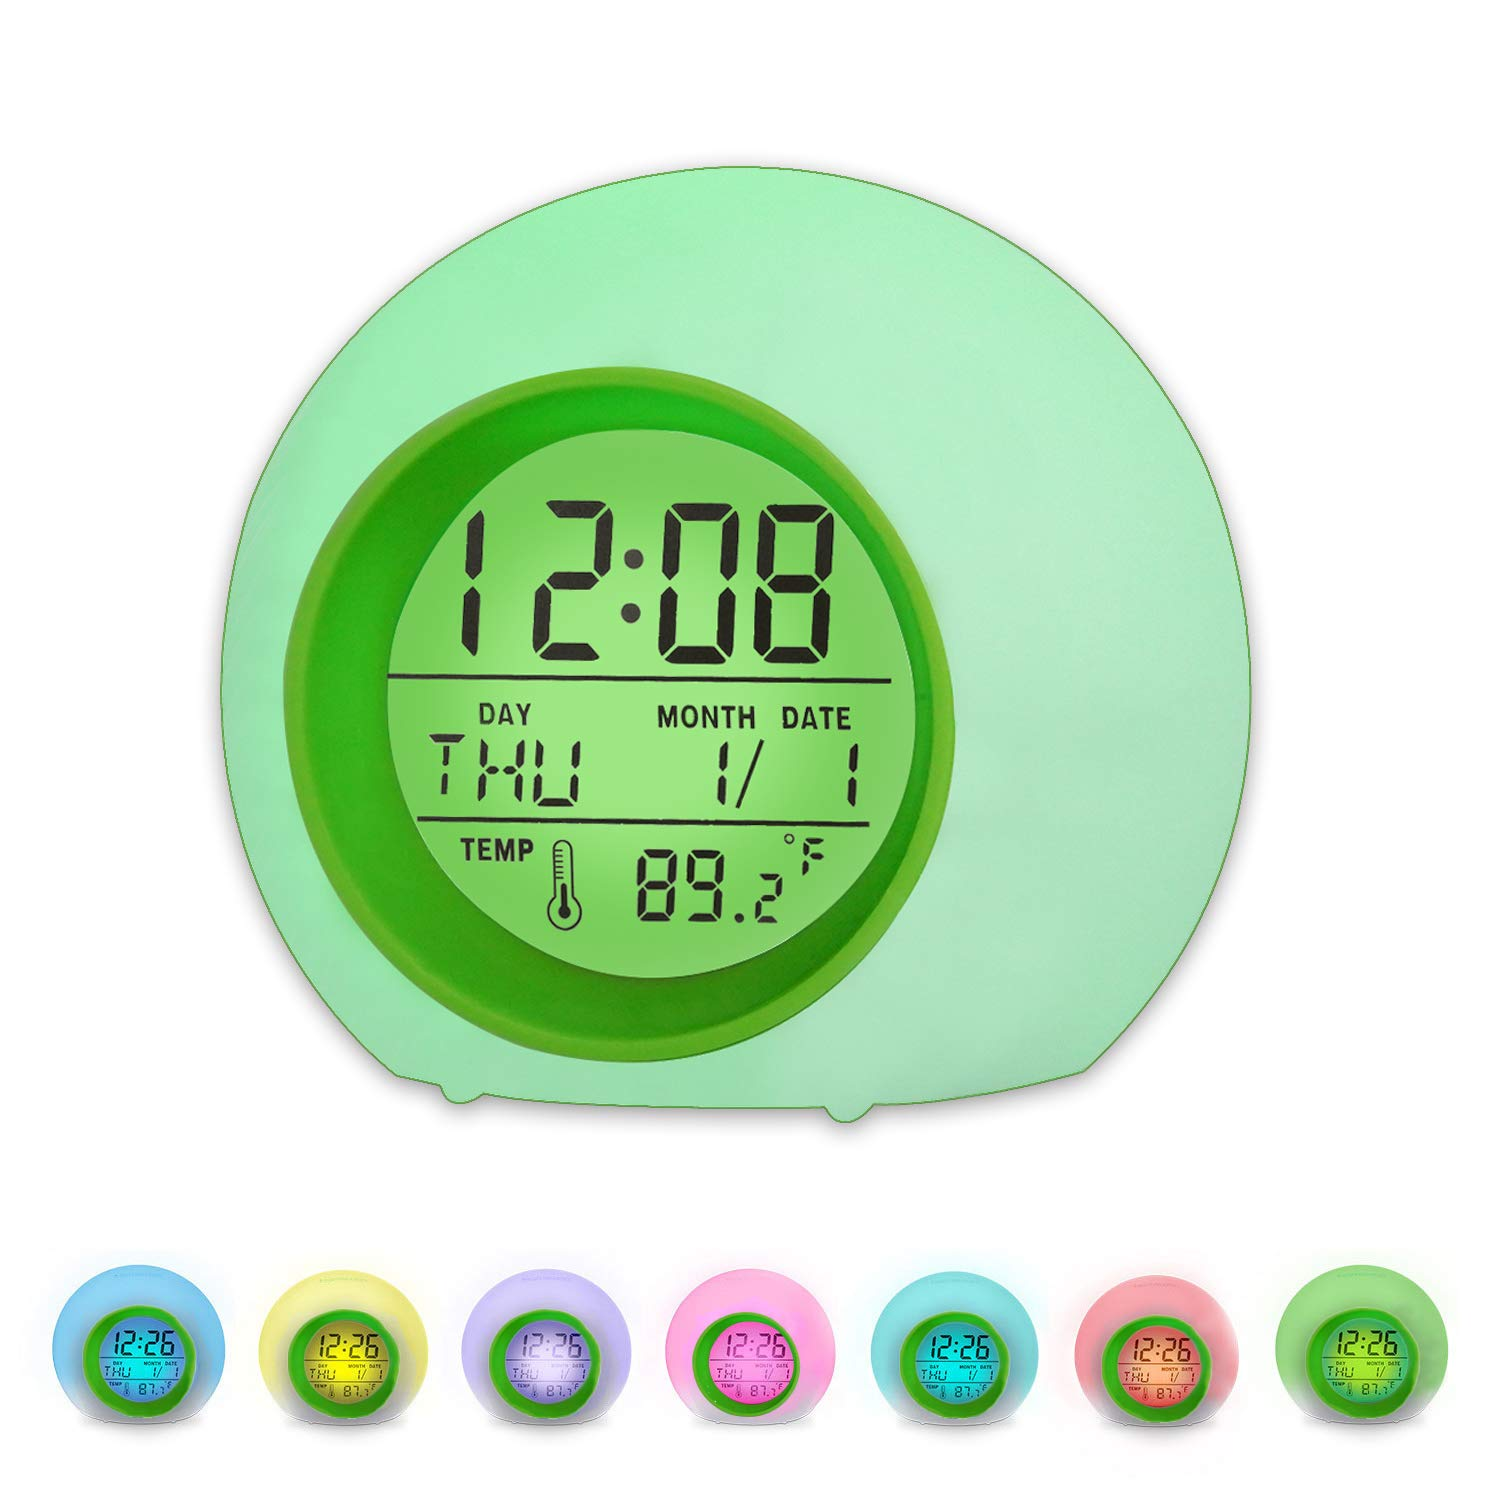 BZ Alarm Clock for Kids, 7 Colors Changing, LED Digital, Round, Battery, Temperature Detect, One Tap Control, Alarm Setting, Snooze, 12/24 H, for Kids, Home(Green)